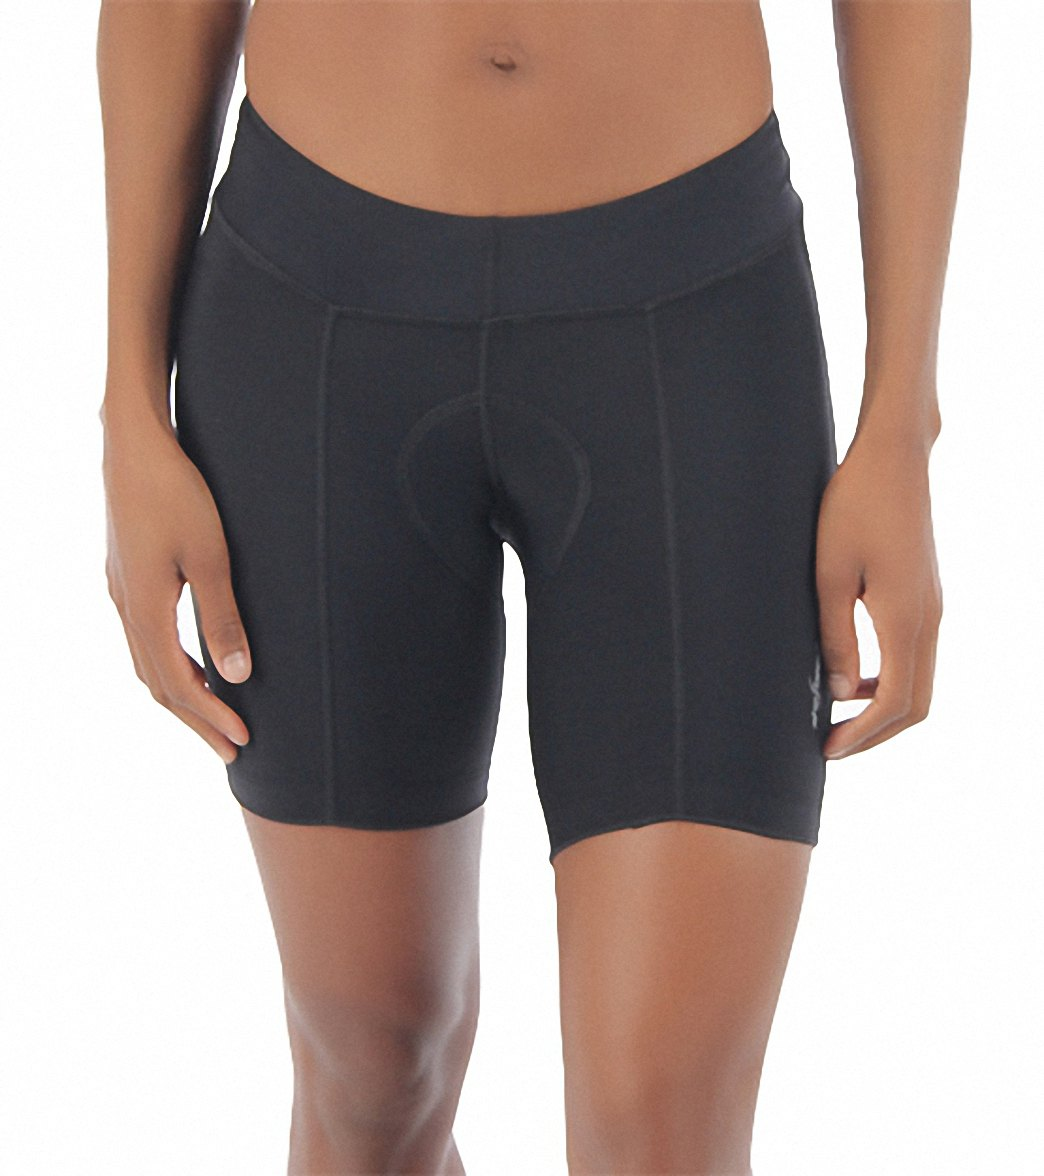 SheBeest Women s S-Pro Cycling Short at SwimOutlet.com - Free Shipping 56d5c3c7d